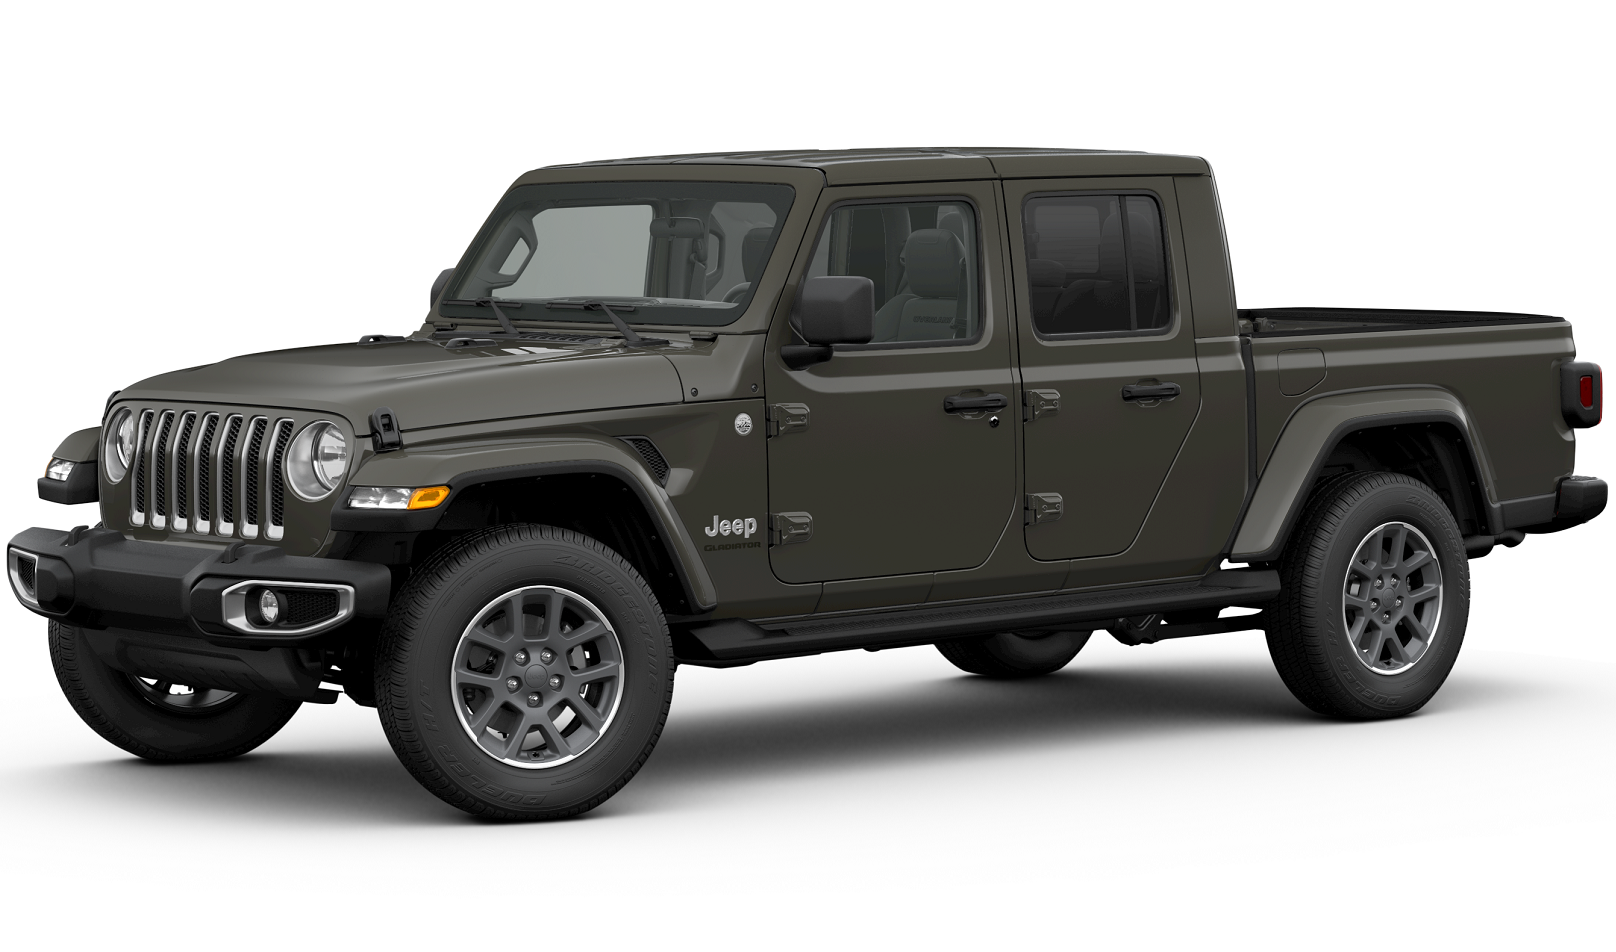 Jeep Gladiator Vs Toyota Tacoma Review Elkins Wv Elkins Cdjr